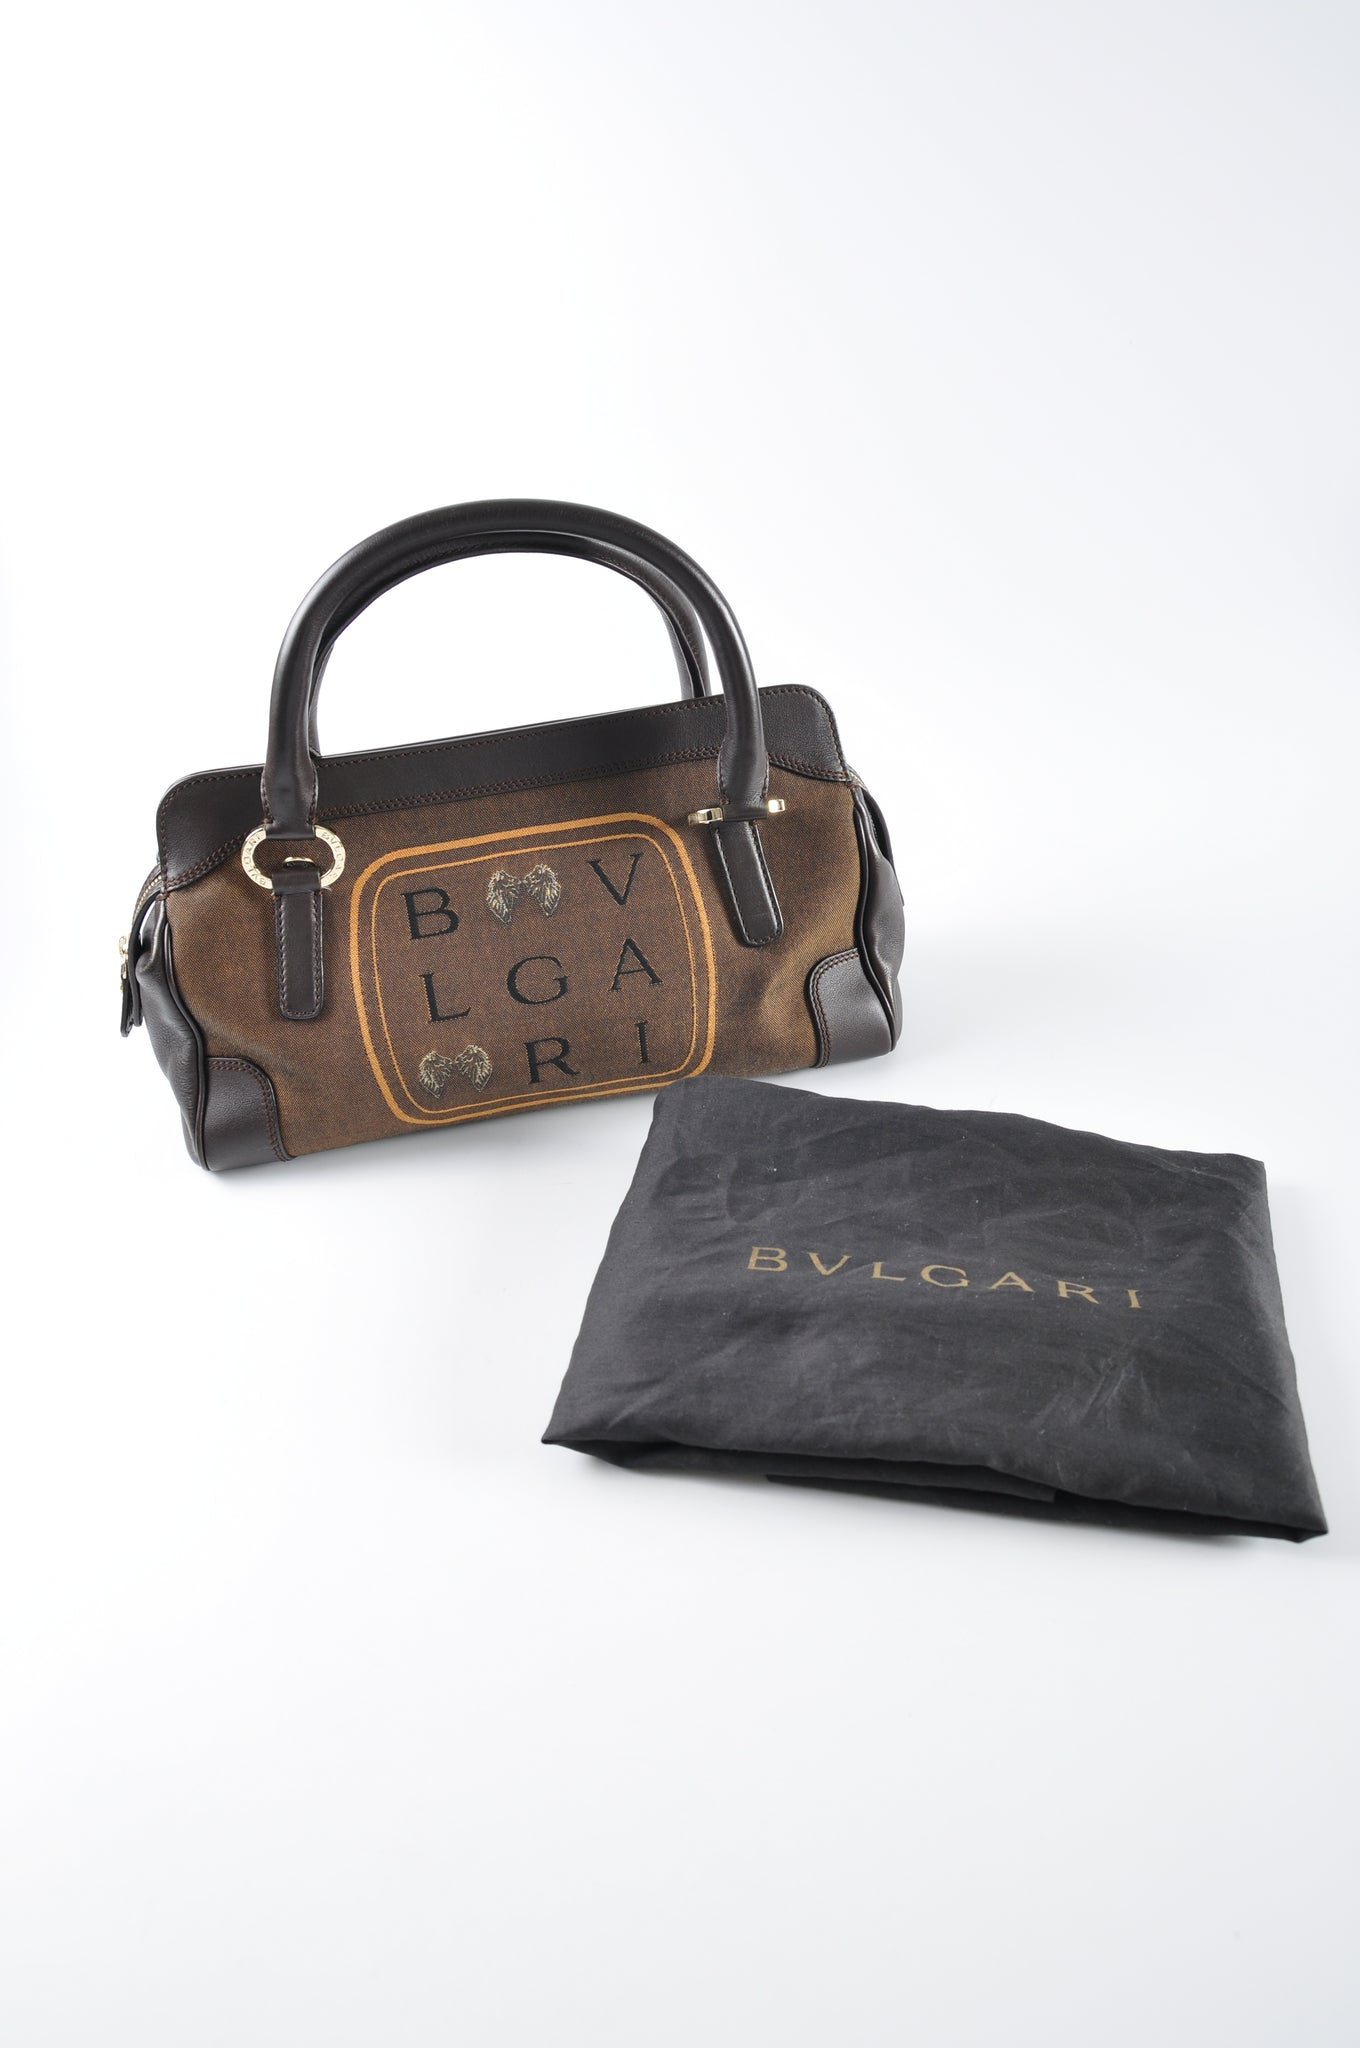 Bvlgari Brown Canvas Leather Top Handle Bag